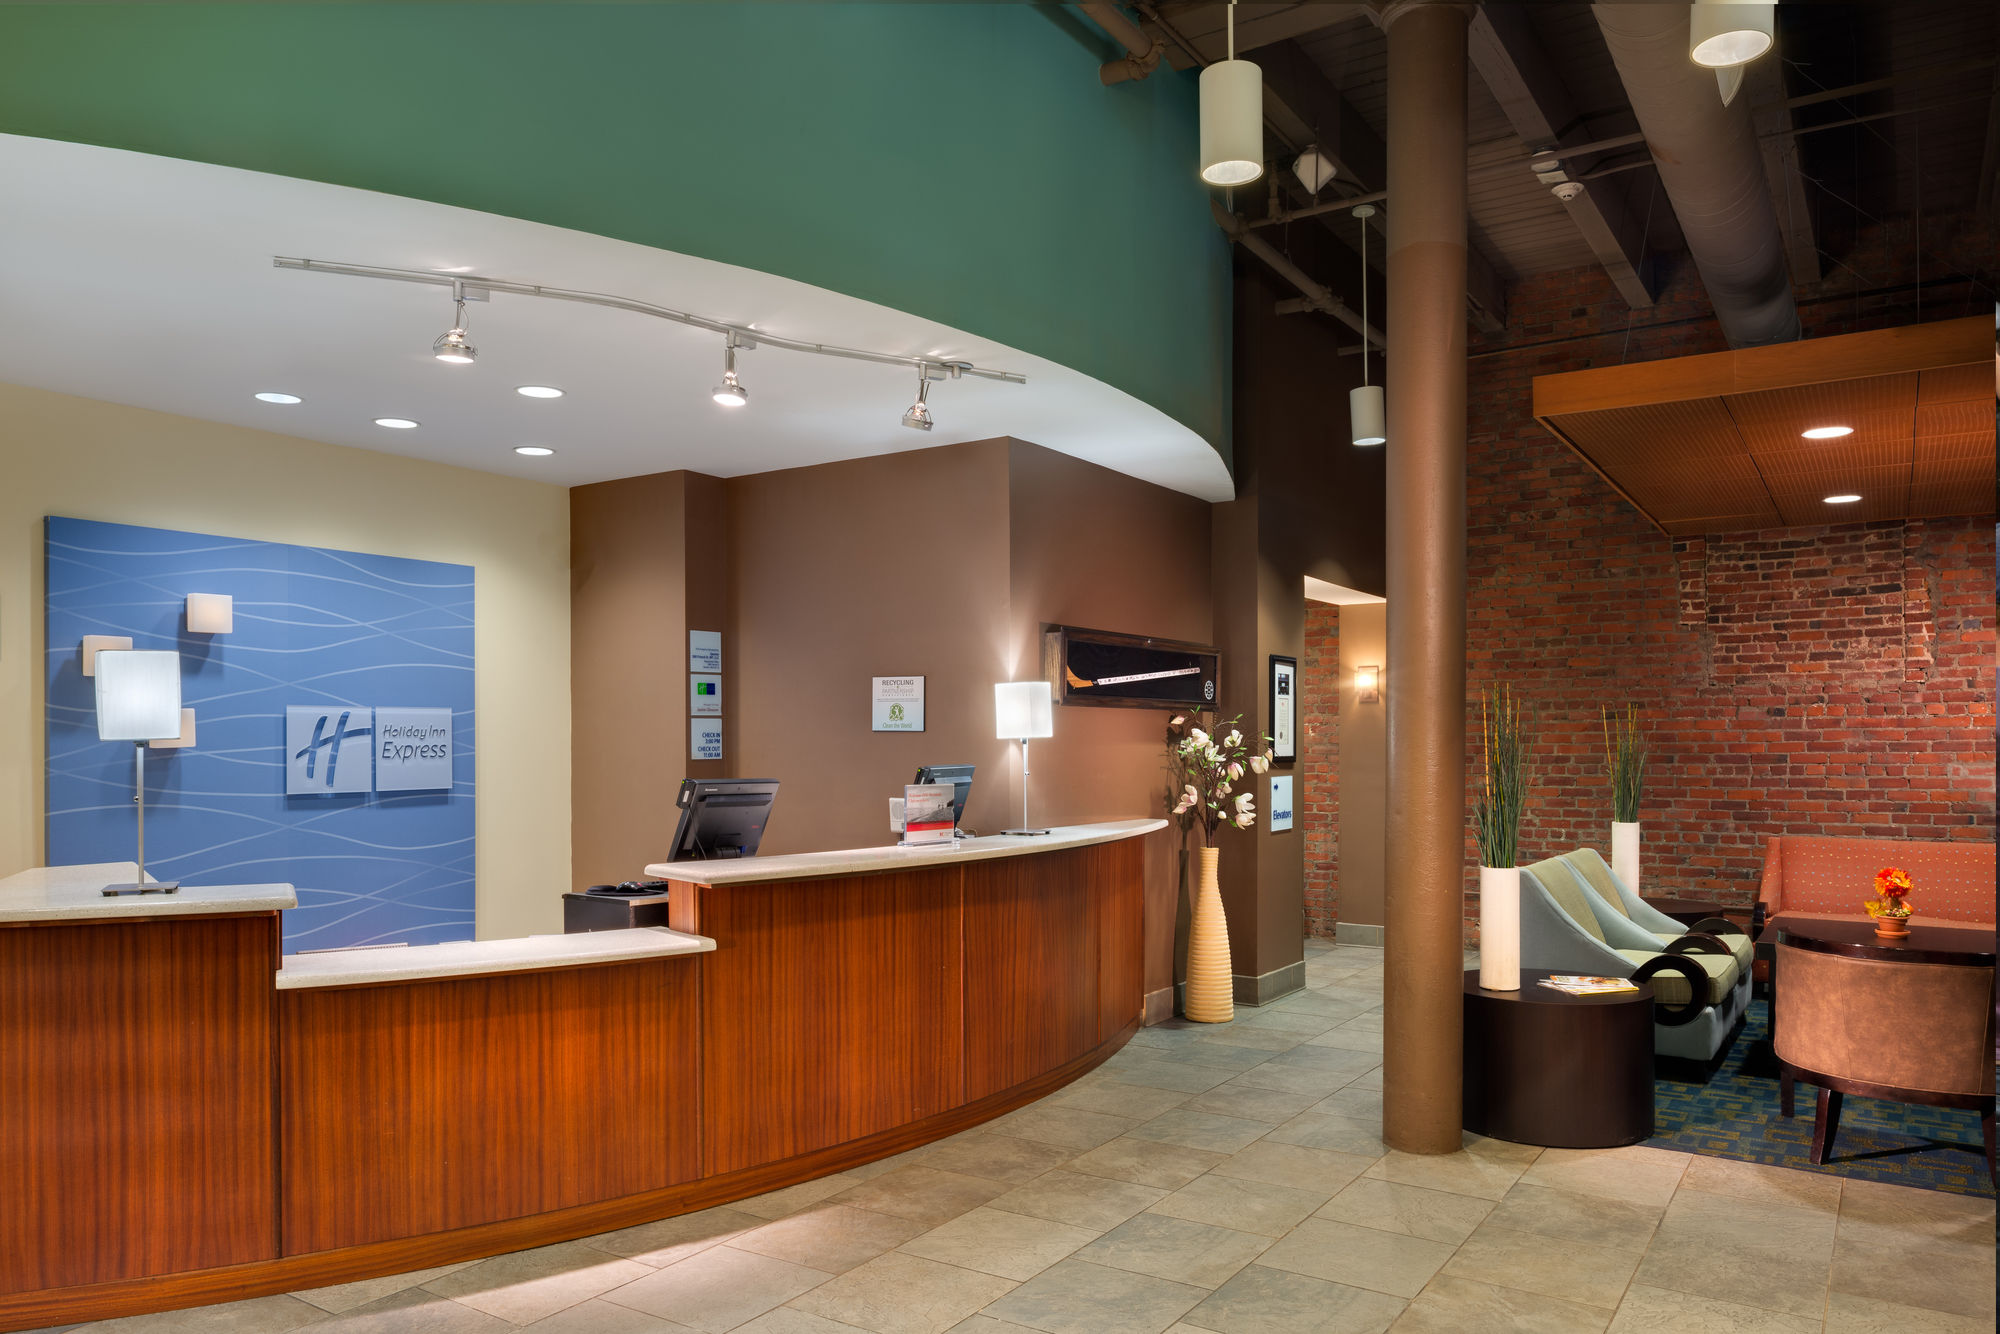 Discount Coupon for Holiday Inn Express Hotel & Suites Boston Garden ...